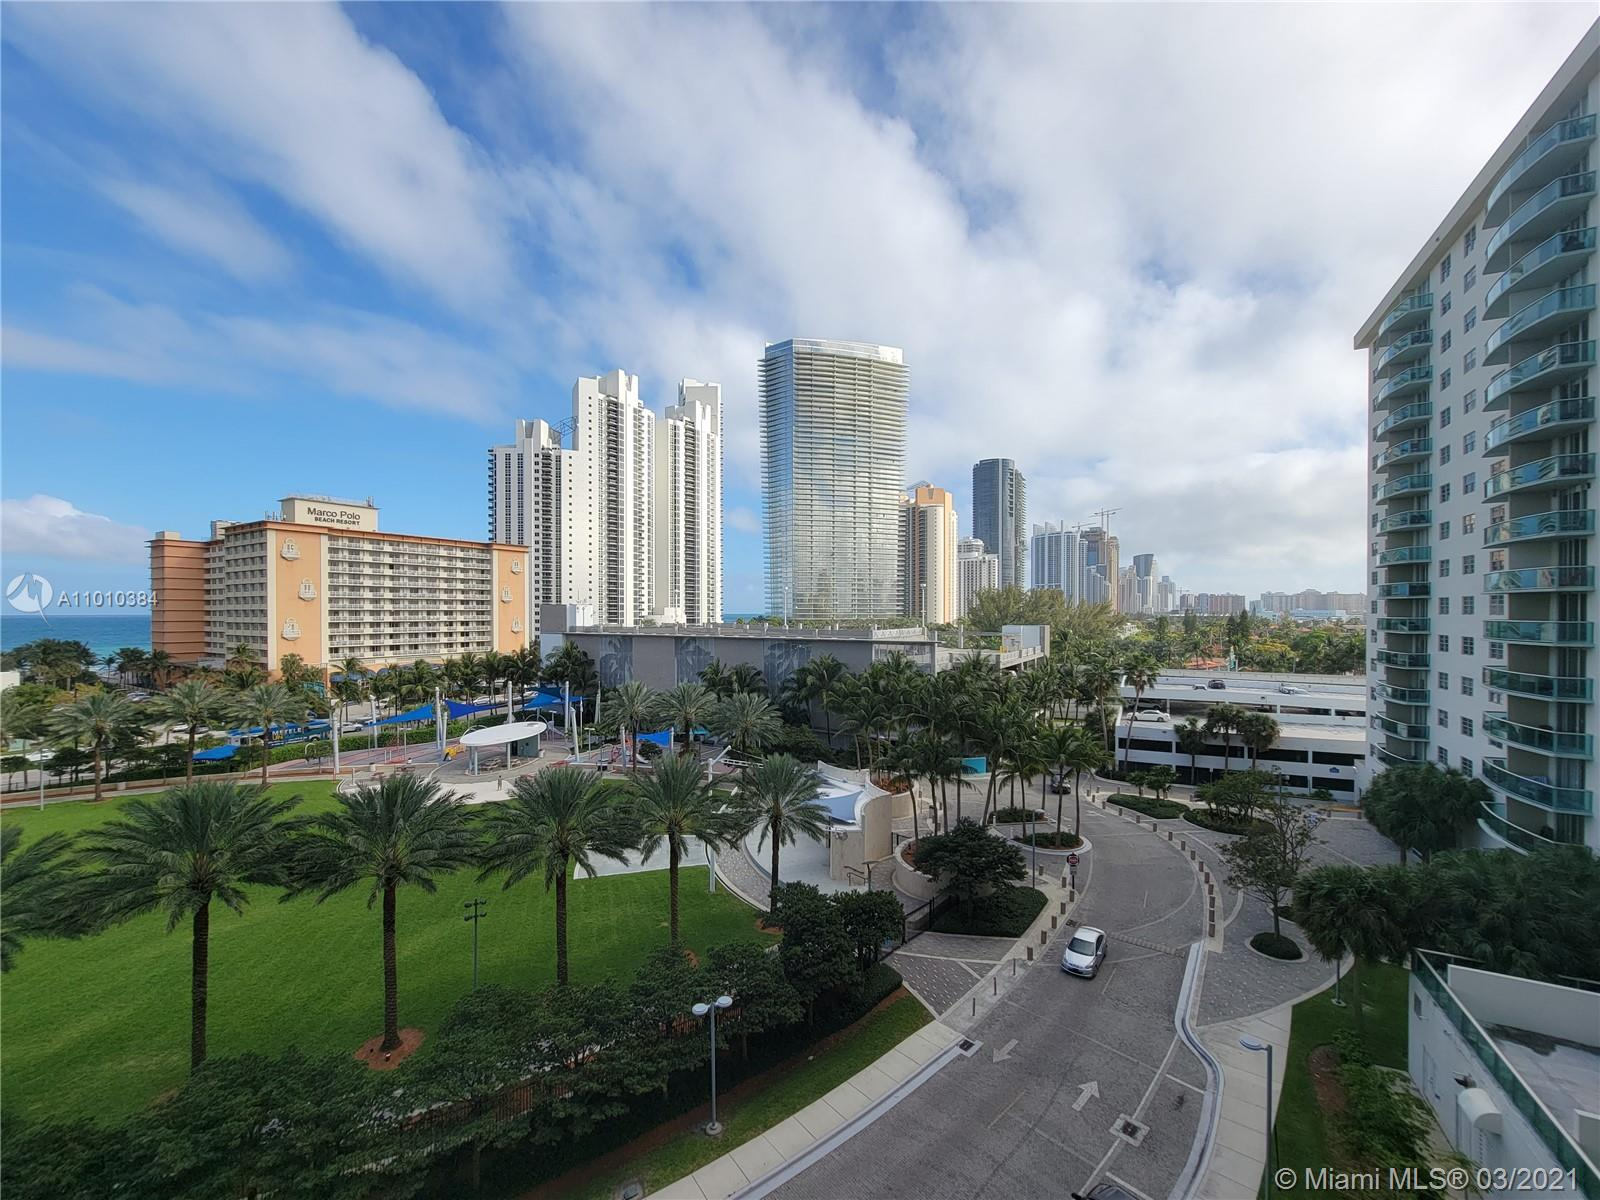 Photo of 19370 Collins Ave #721, Sunny Isles Beach, Florida, 33160 - Beautiful Ocean view from Every Window